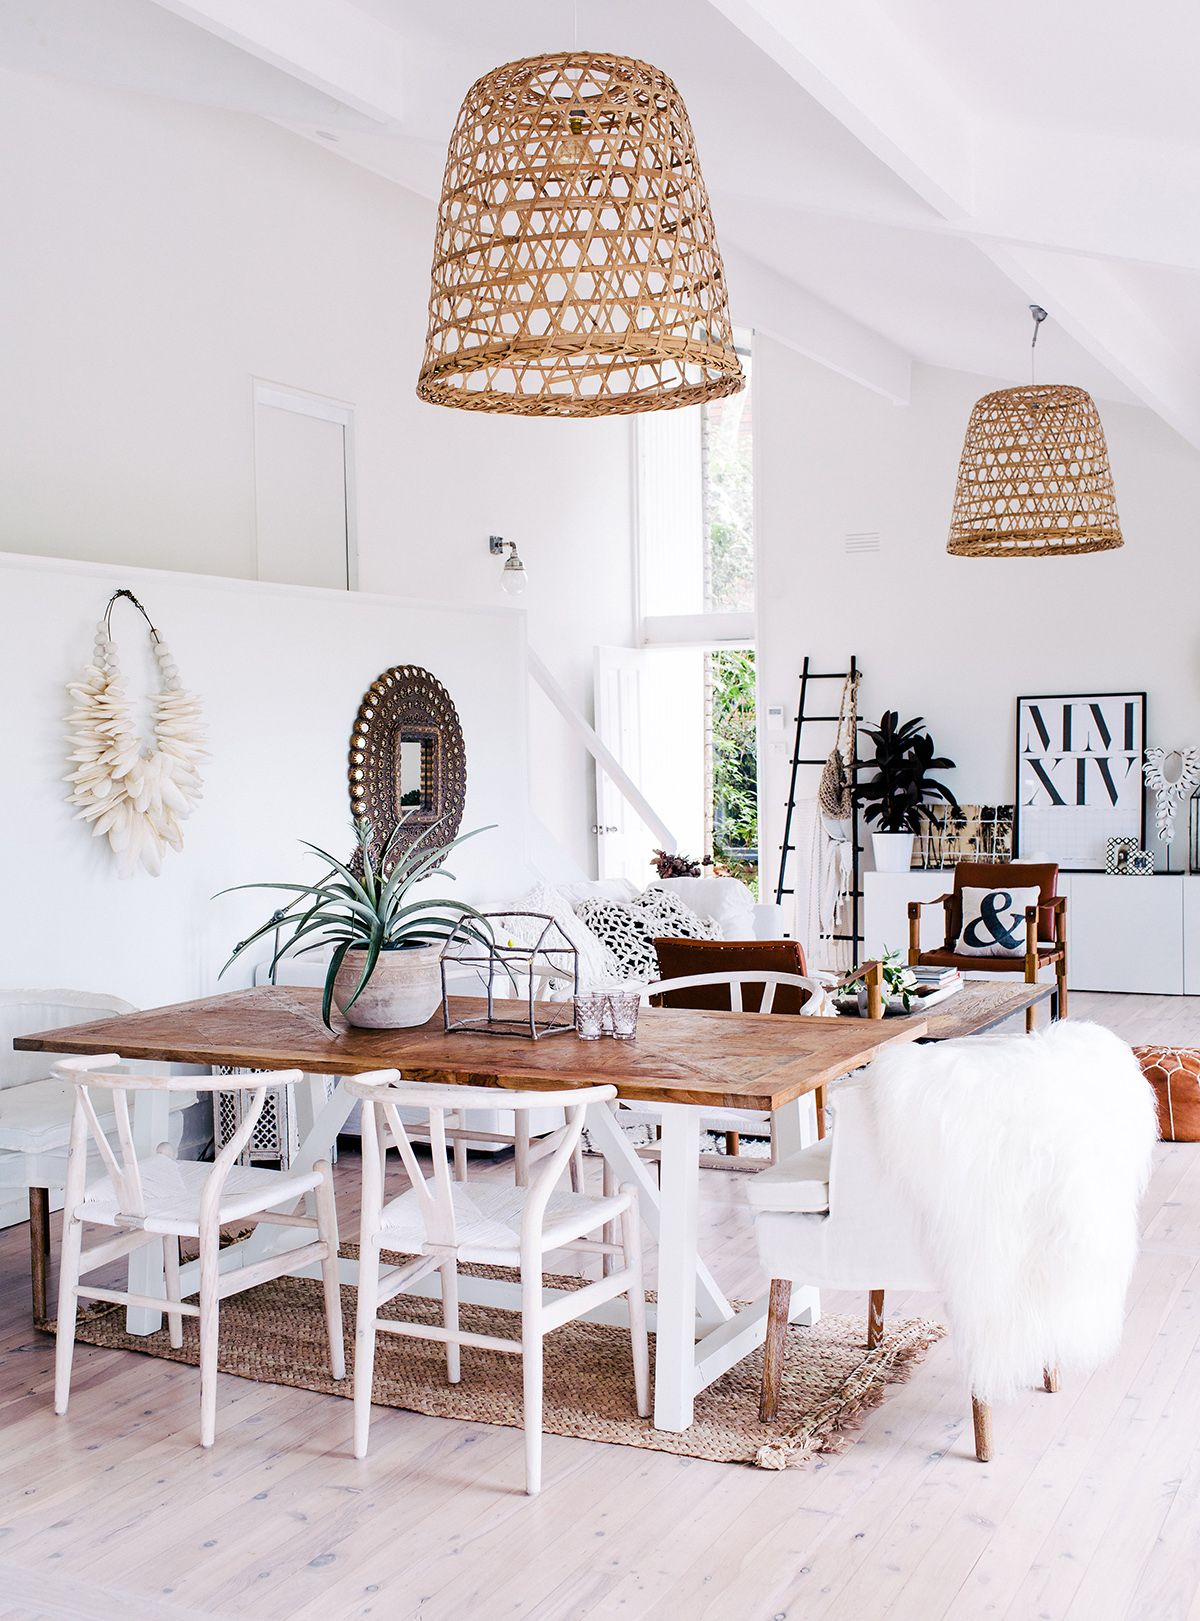 Bon Zoe Dent Of The Wedding Nest, Talks To Us About Work, Home And What Makes  Her Style Mantra Tick.